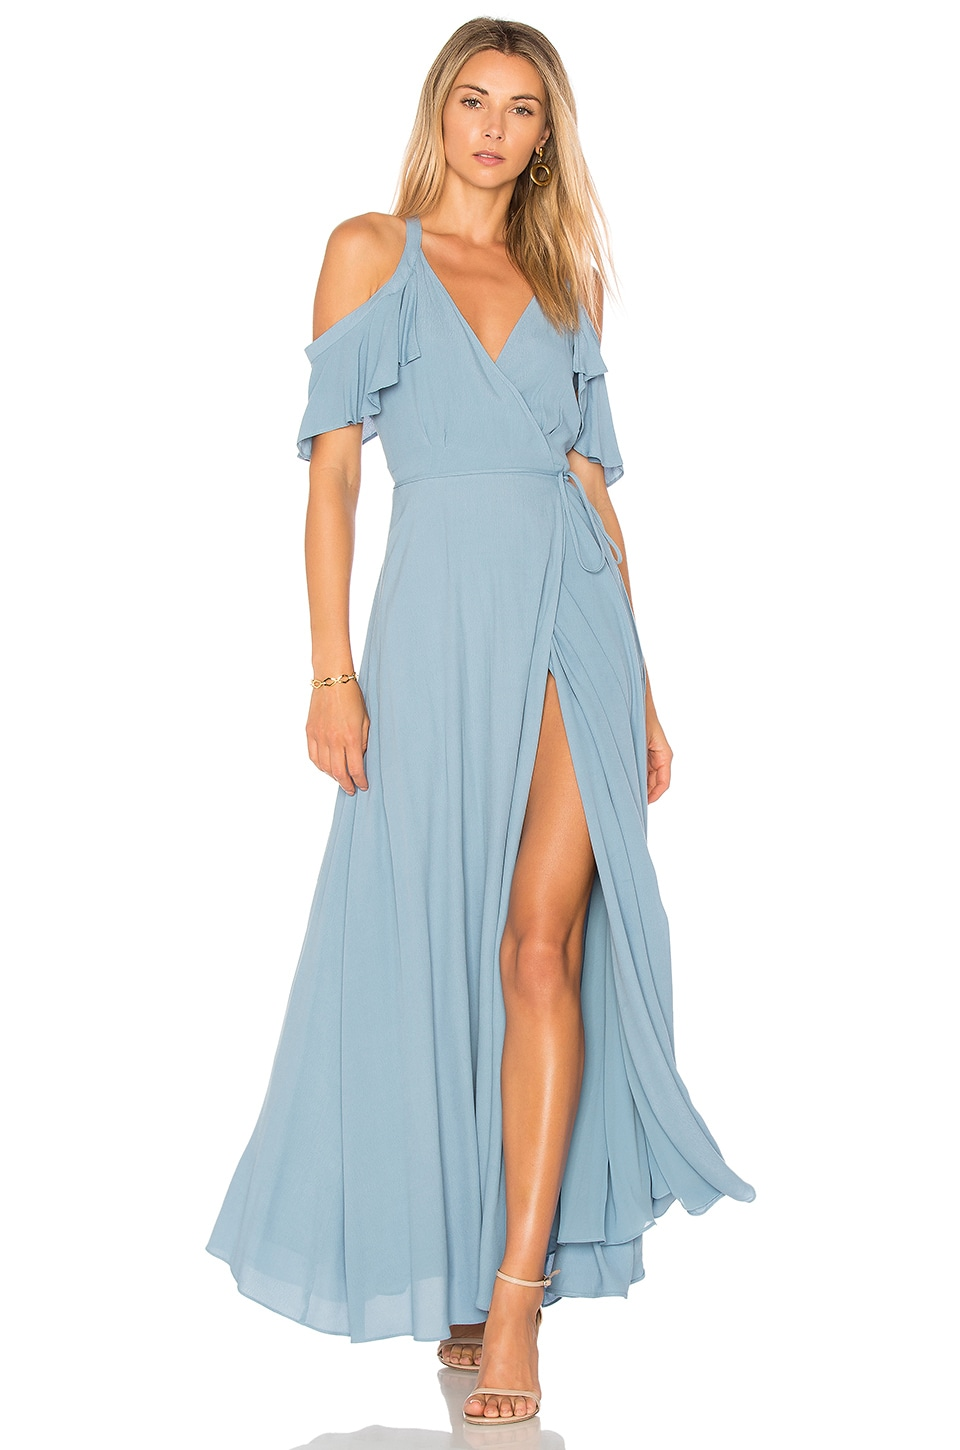 Privacy Please Acme Dress in Blue